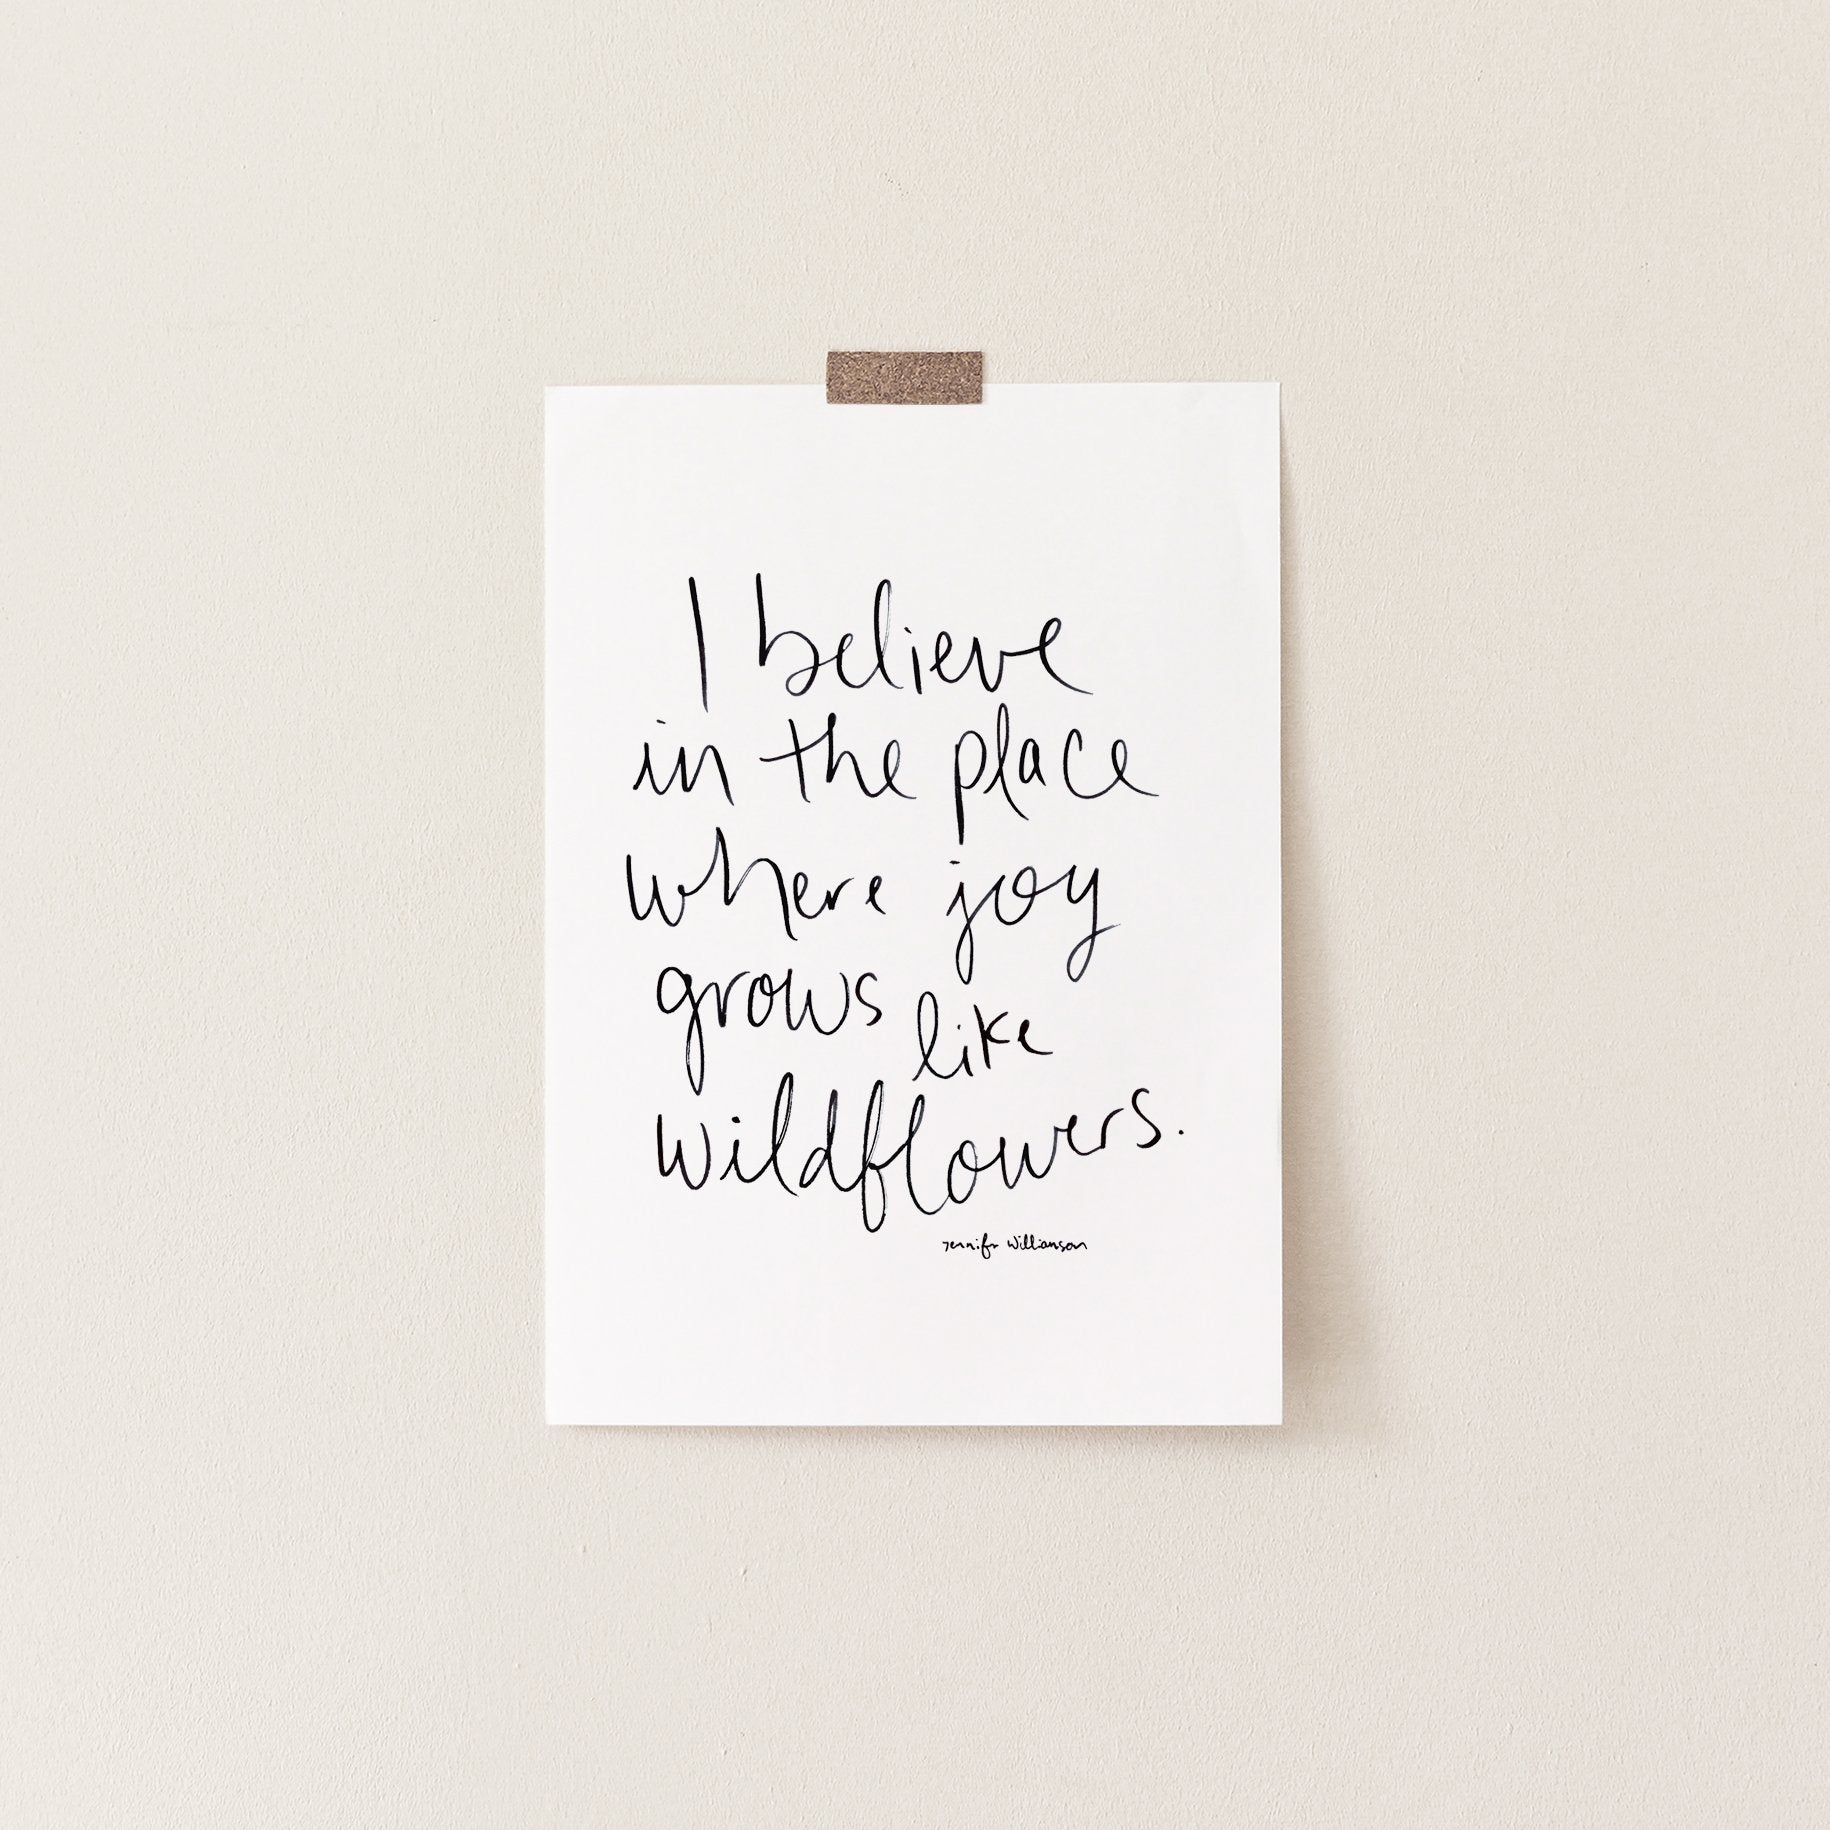 Where Joy Grows Like Wildflowers Hand Lettered Affirmation Art Print